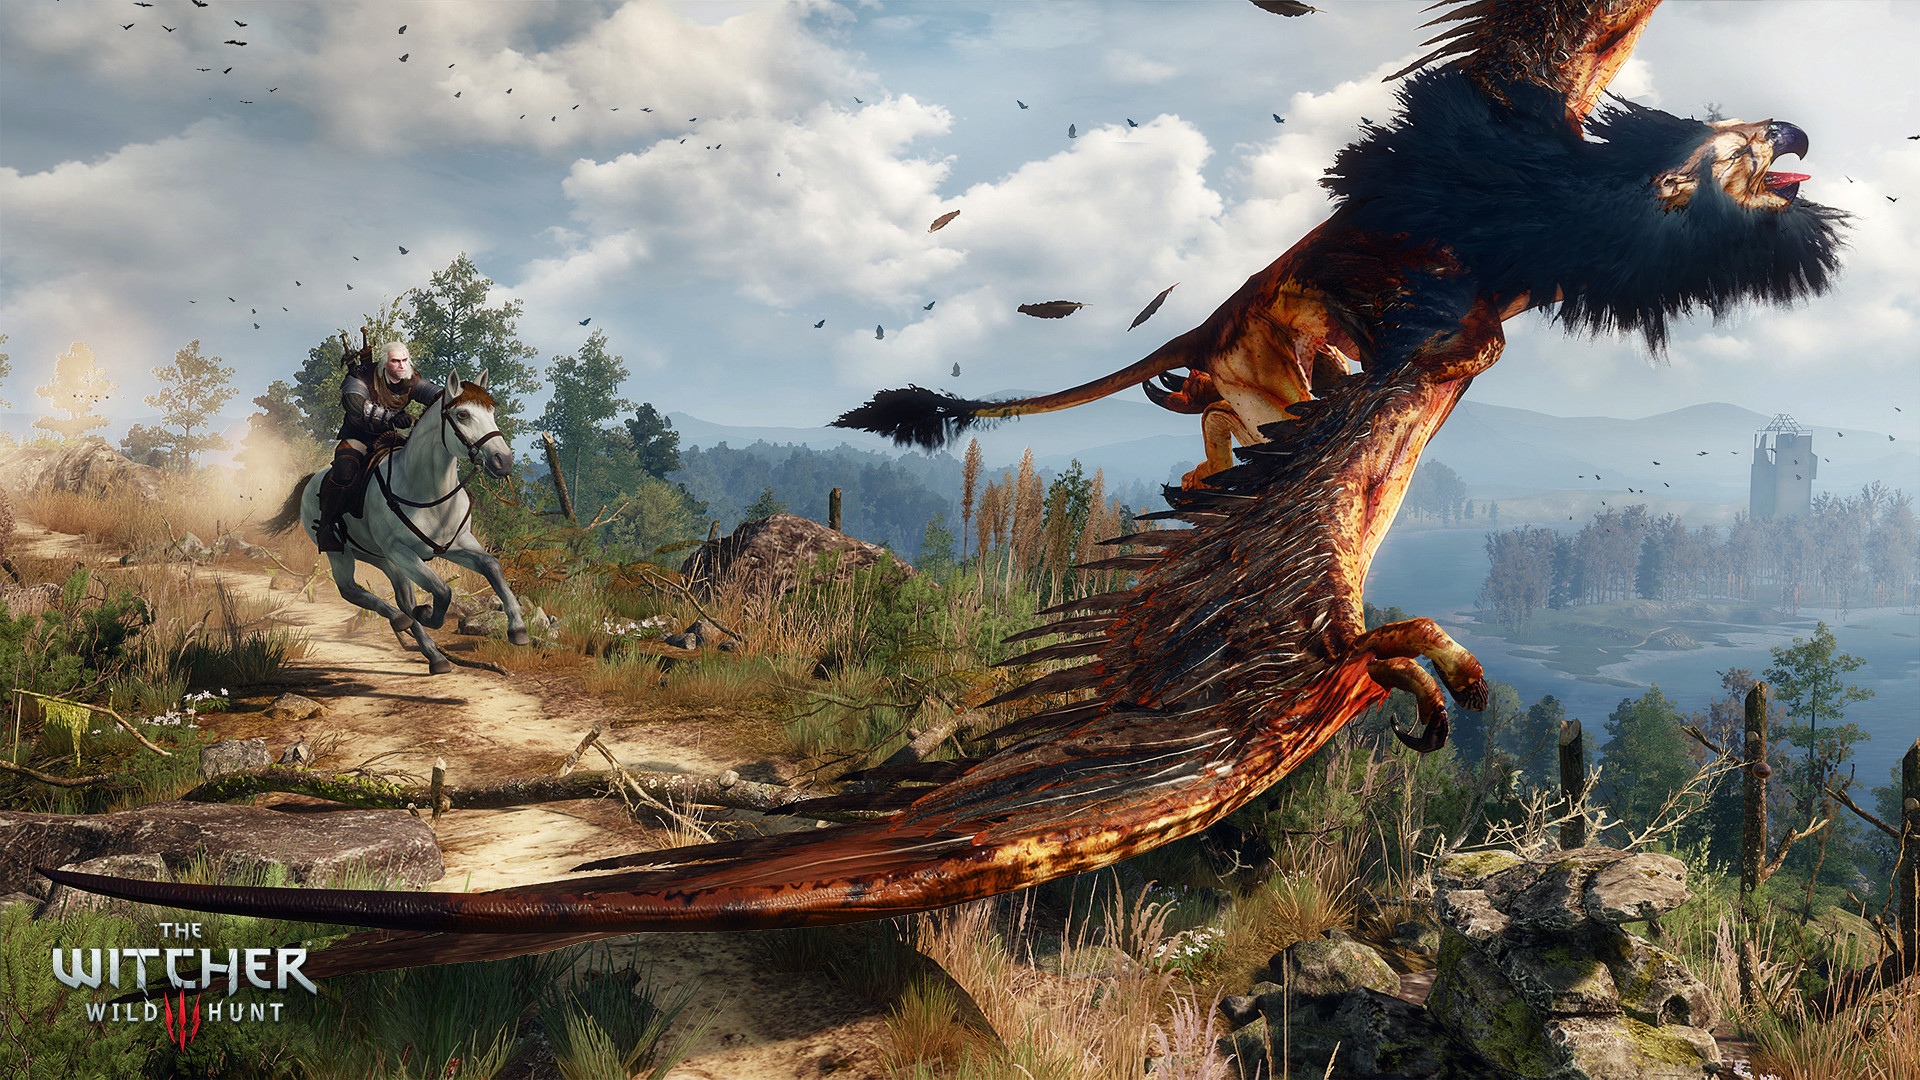 Screenshot for the game Ведьмак 3: Дикая Охота / The Witcher 3: Wild Hunt - Game of the Year Edition [v 1.31 + 18 DLC] (2015) PC | RePack от R.G. Механики